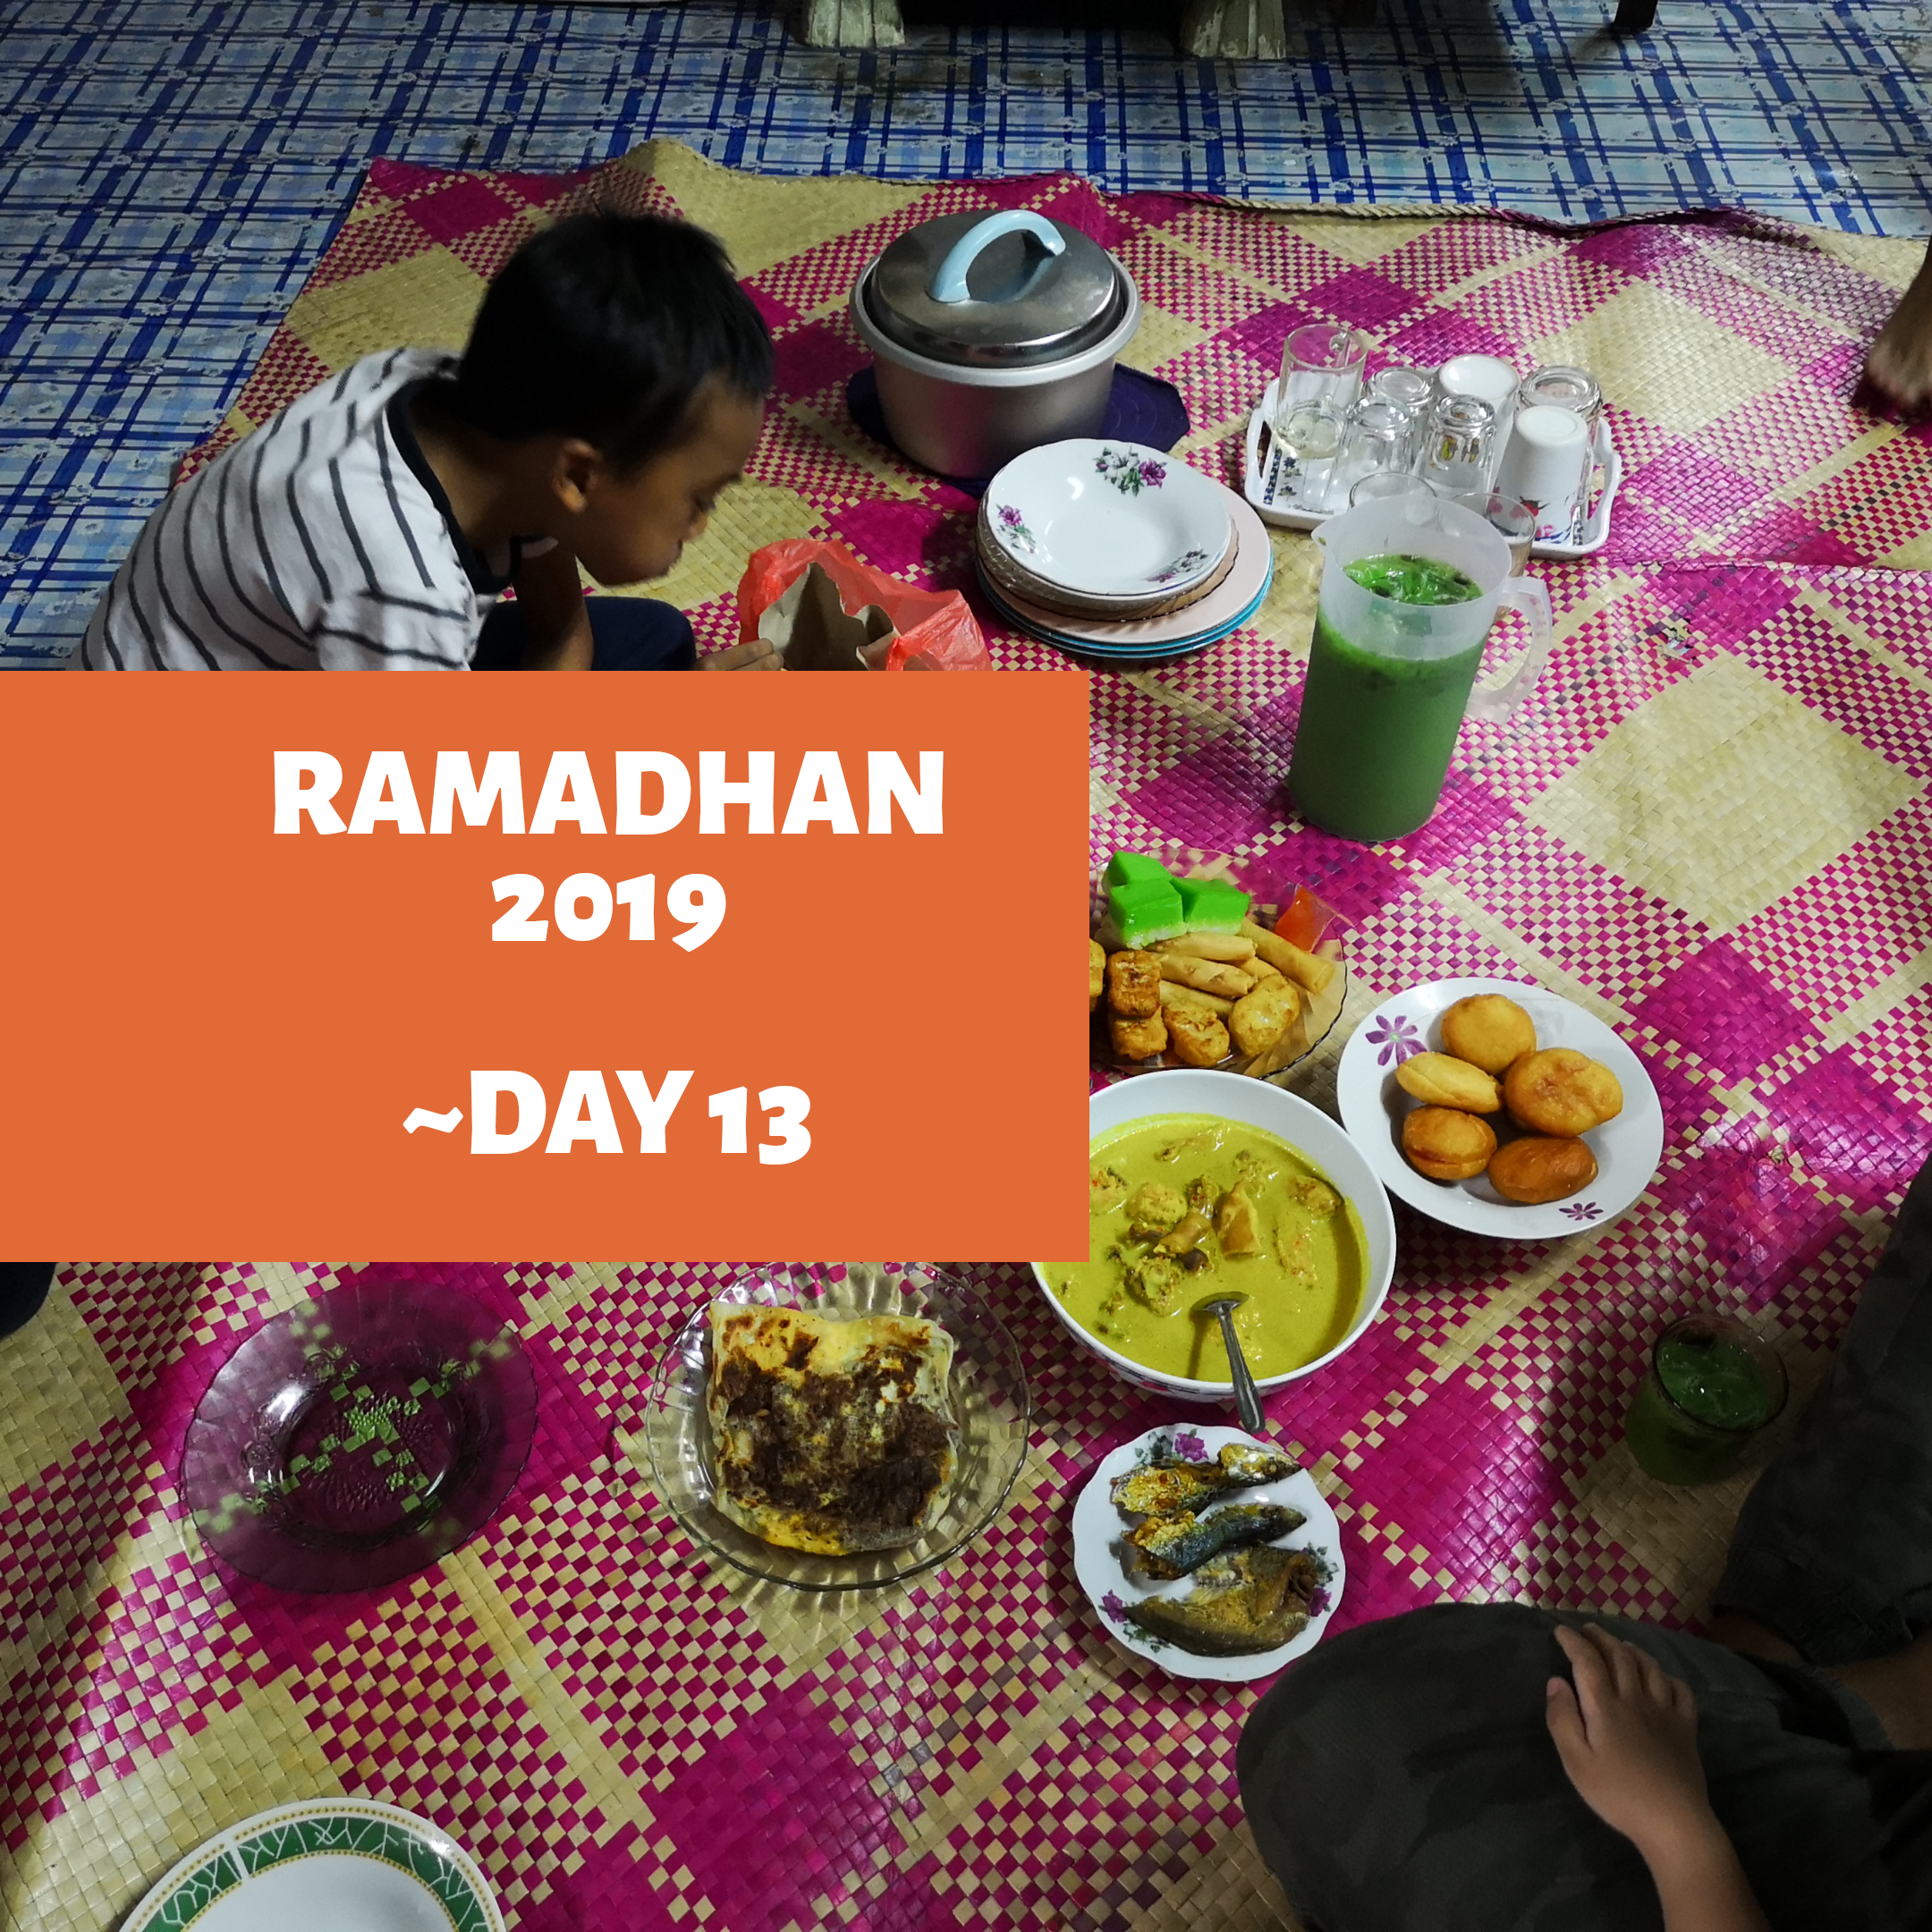 Ramadhan 2019 – Day 13